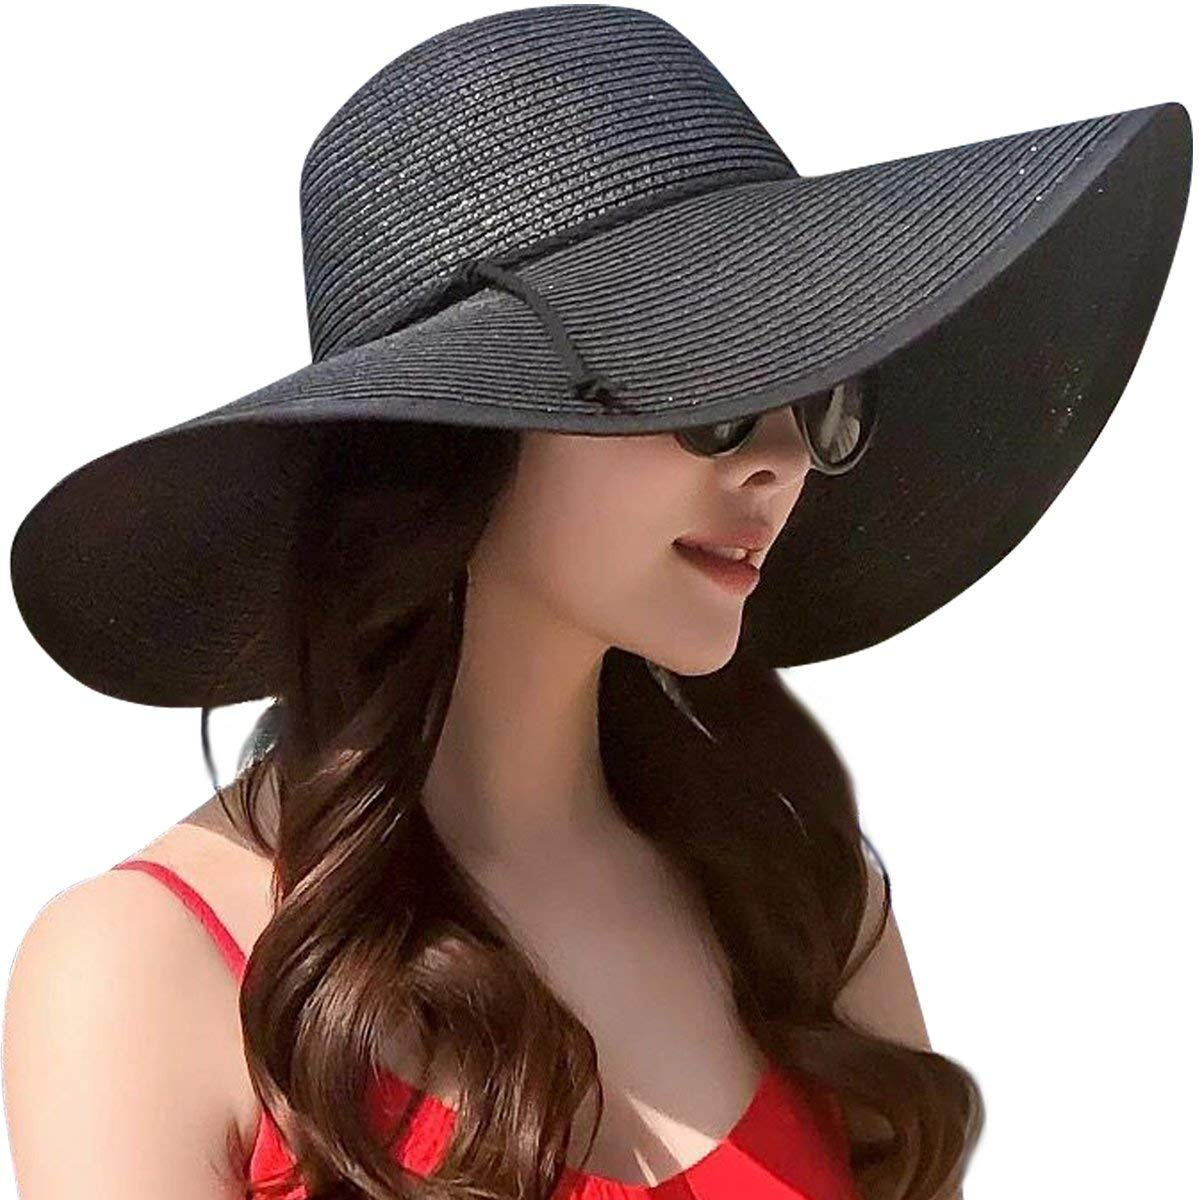 b6ed443a9e1 Get Quotations · Lanzom Womens Wide Brim Straw Hat Floppy Foldable Roll up  Cap Beach Sun Hat UPF 50